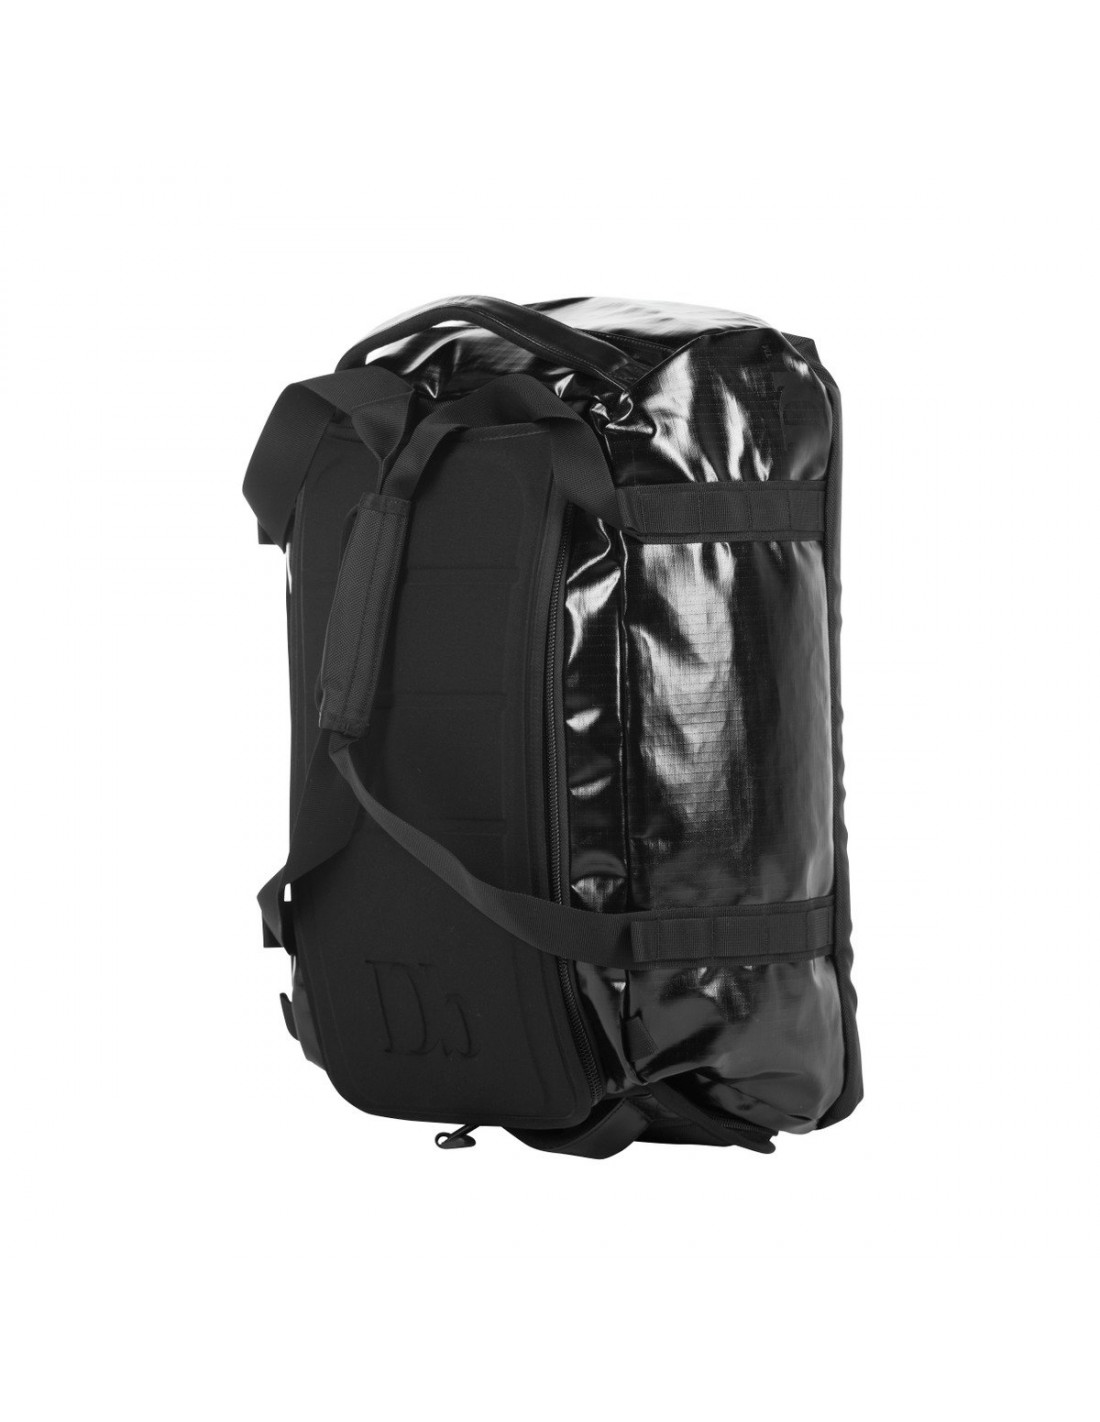 Bag 31-50L Douchebags The Carryall 40L Black Out 165 1,799.00